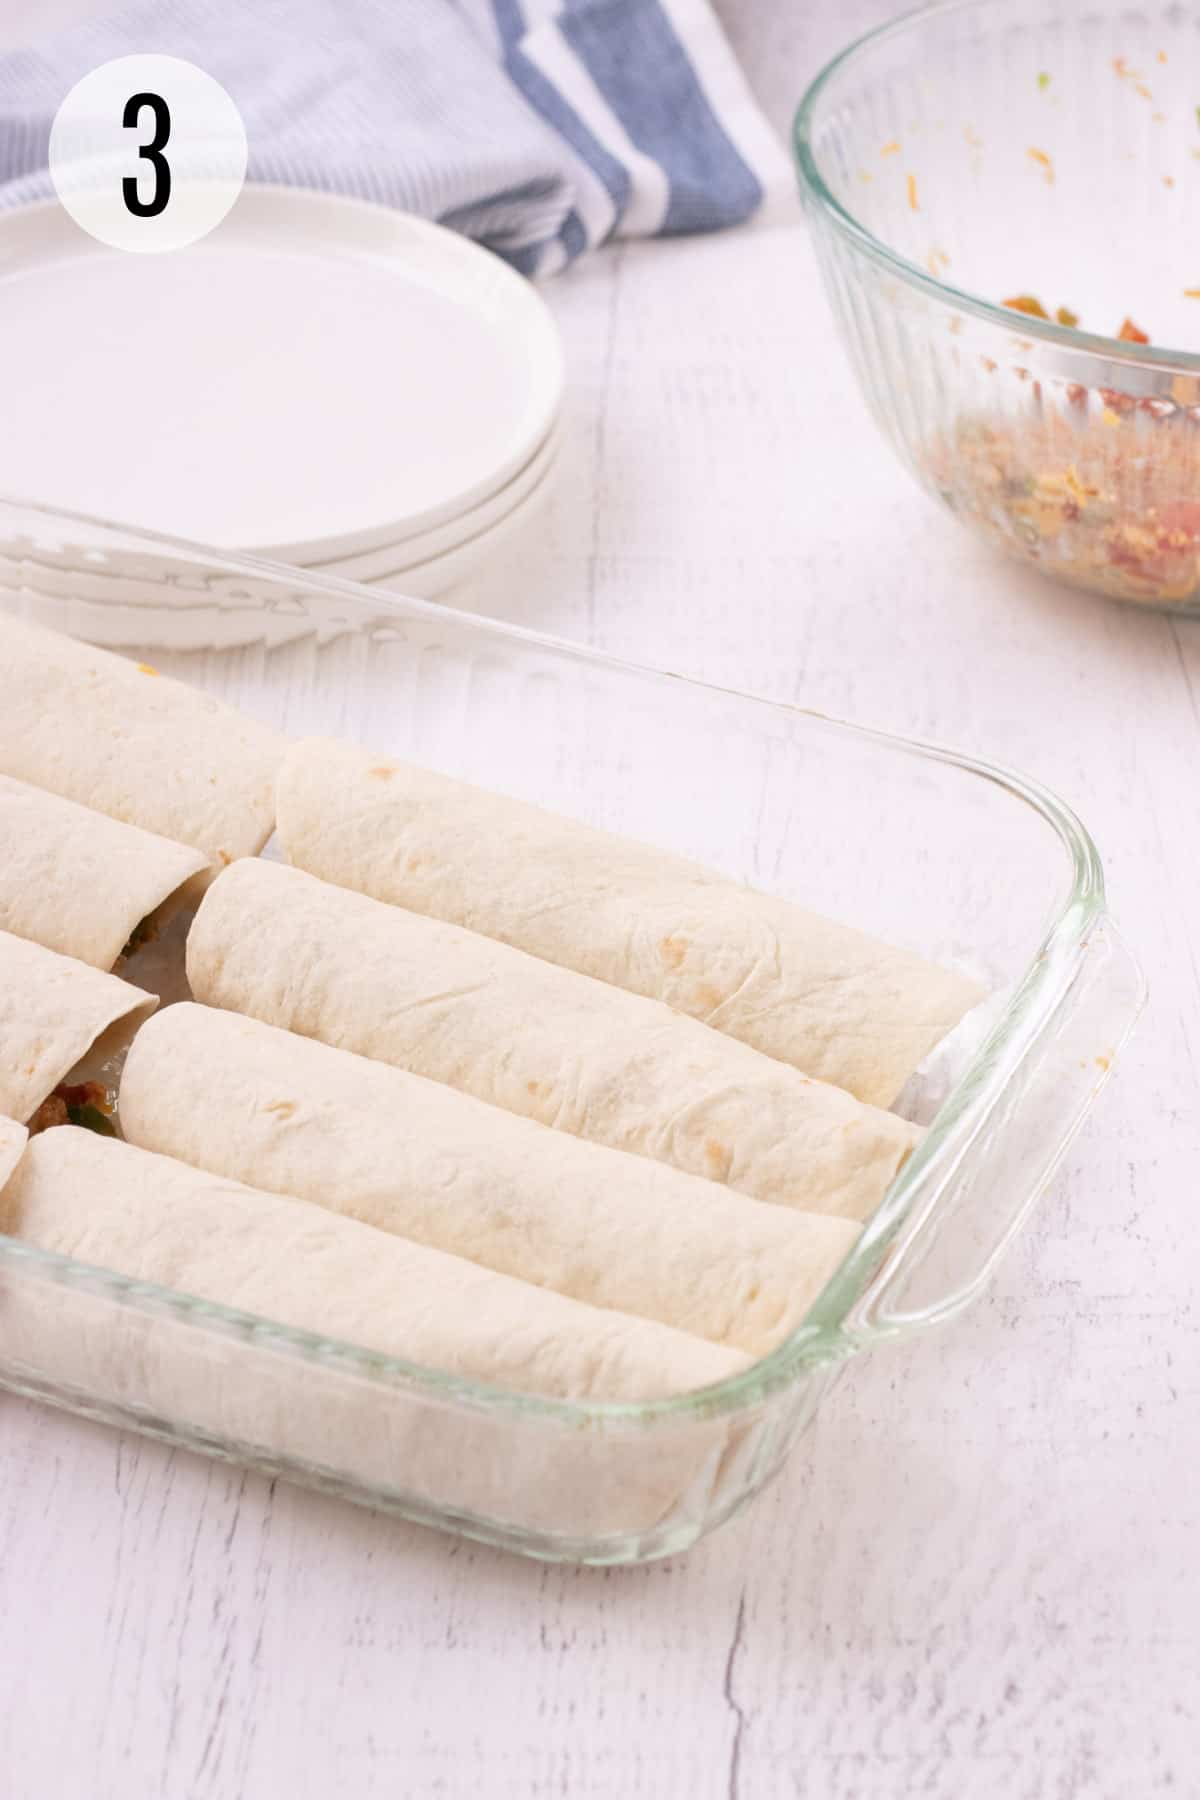 Glass baking dish with rolled tortillas filled with burrito bite mixture and white plates, blue and white striped towel and glass bowl of mixture in upper background.